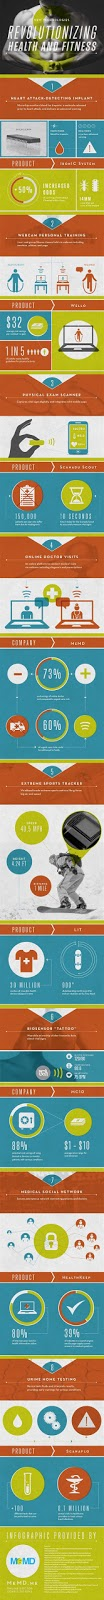 http://www.memd.me/wp-content/uploads/2013/09/infographic-8-technologies-revolutionizing-health-fitness.jpg